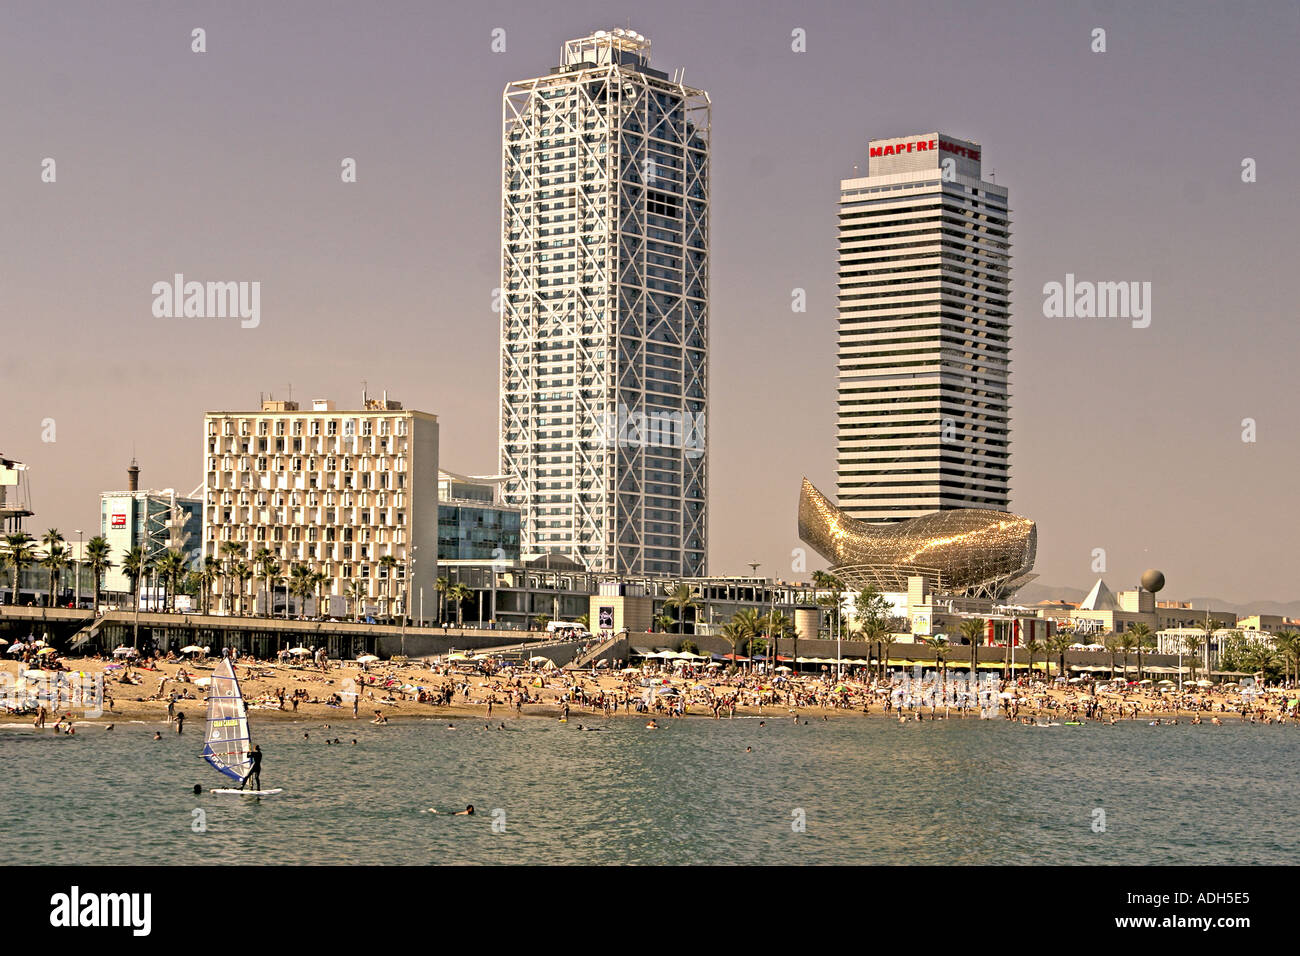 Barcelona Passeig Maritim playa Frank Gehry buidling Stock Photo